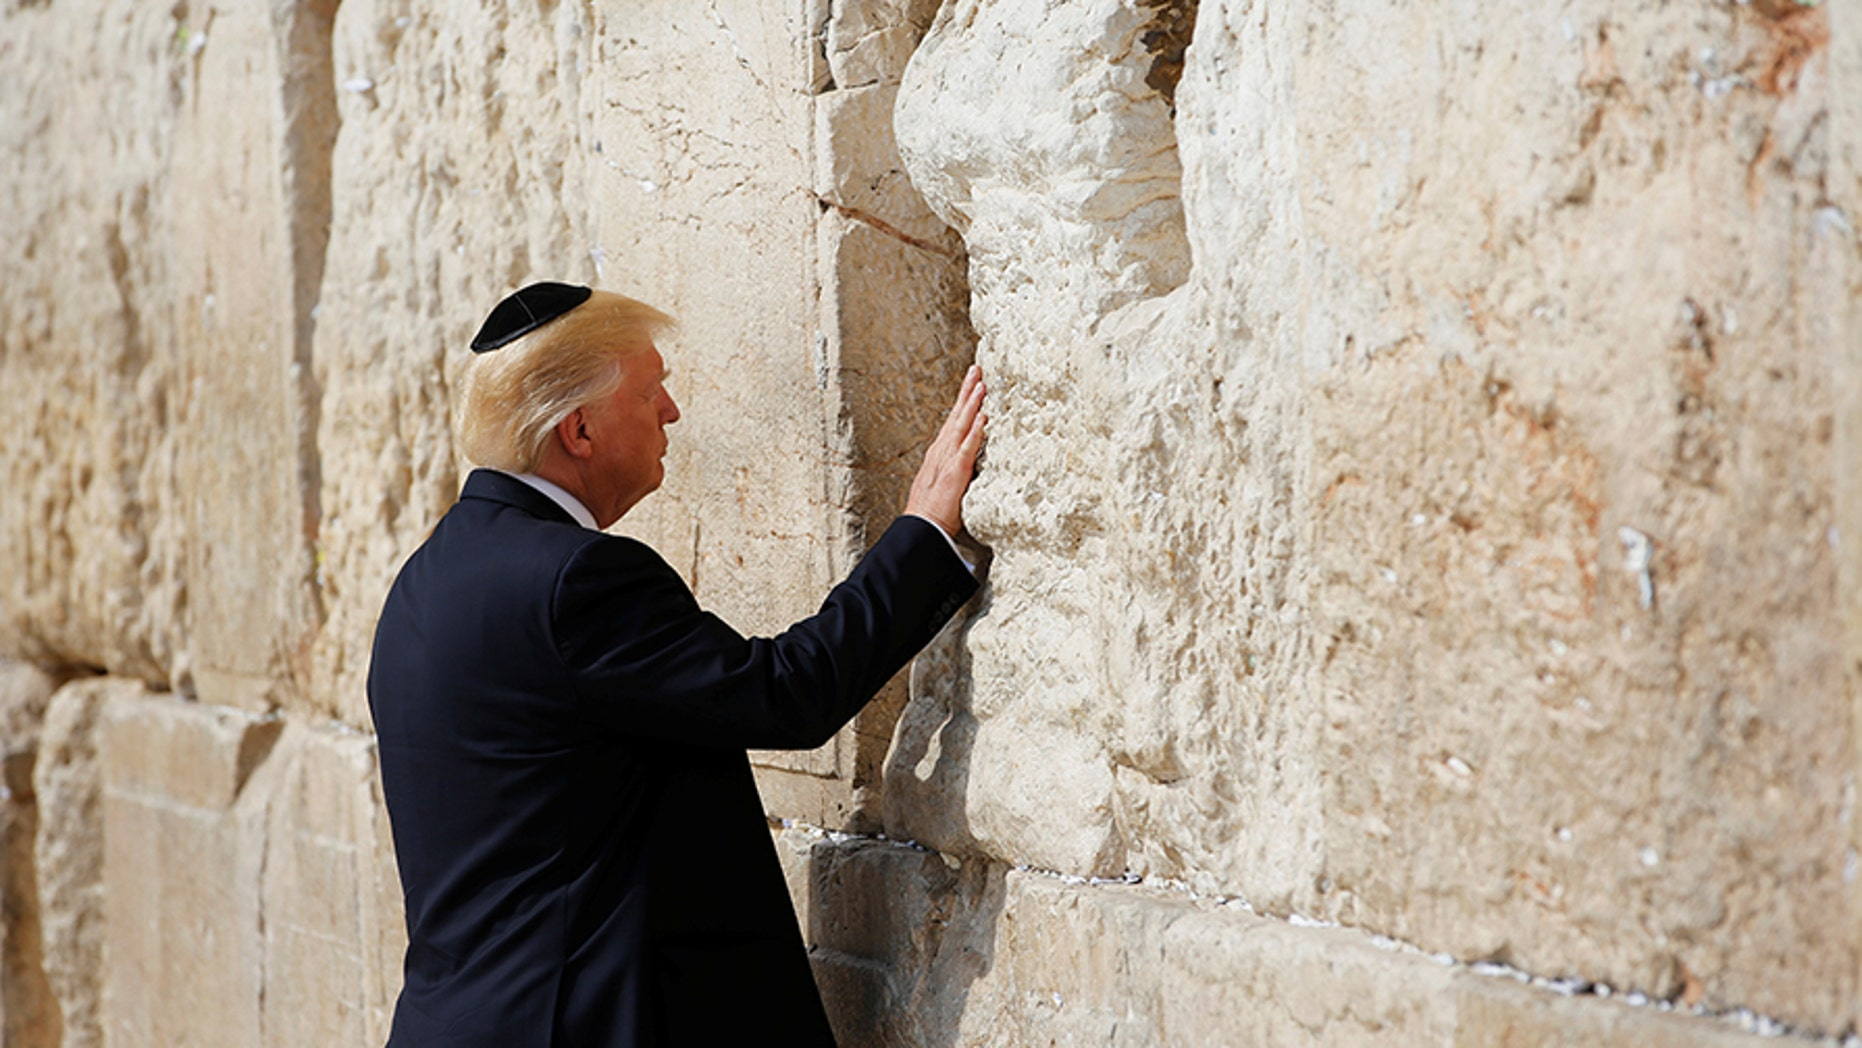 Israel's transportation minister is pushing ahead with a plan to extend Jerusalem's soon-to-open high speed rail line to the Western Wall, where he wants to name a future station after President Trump.